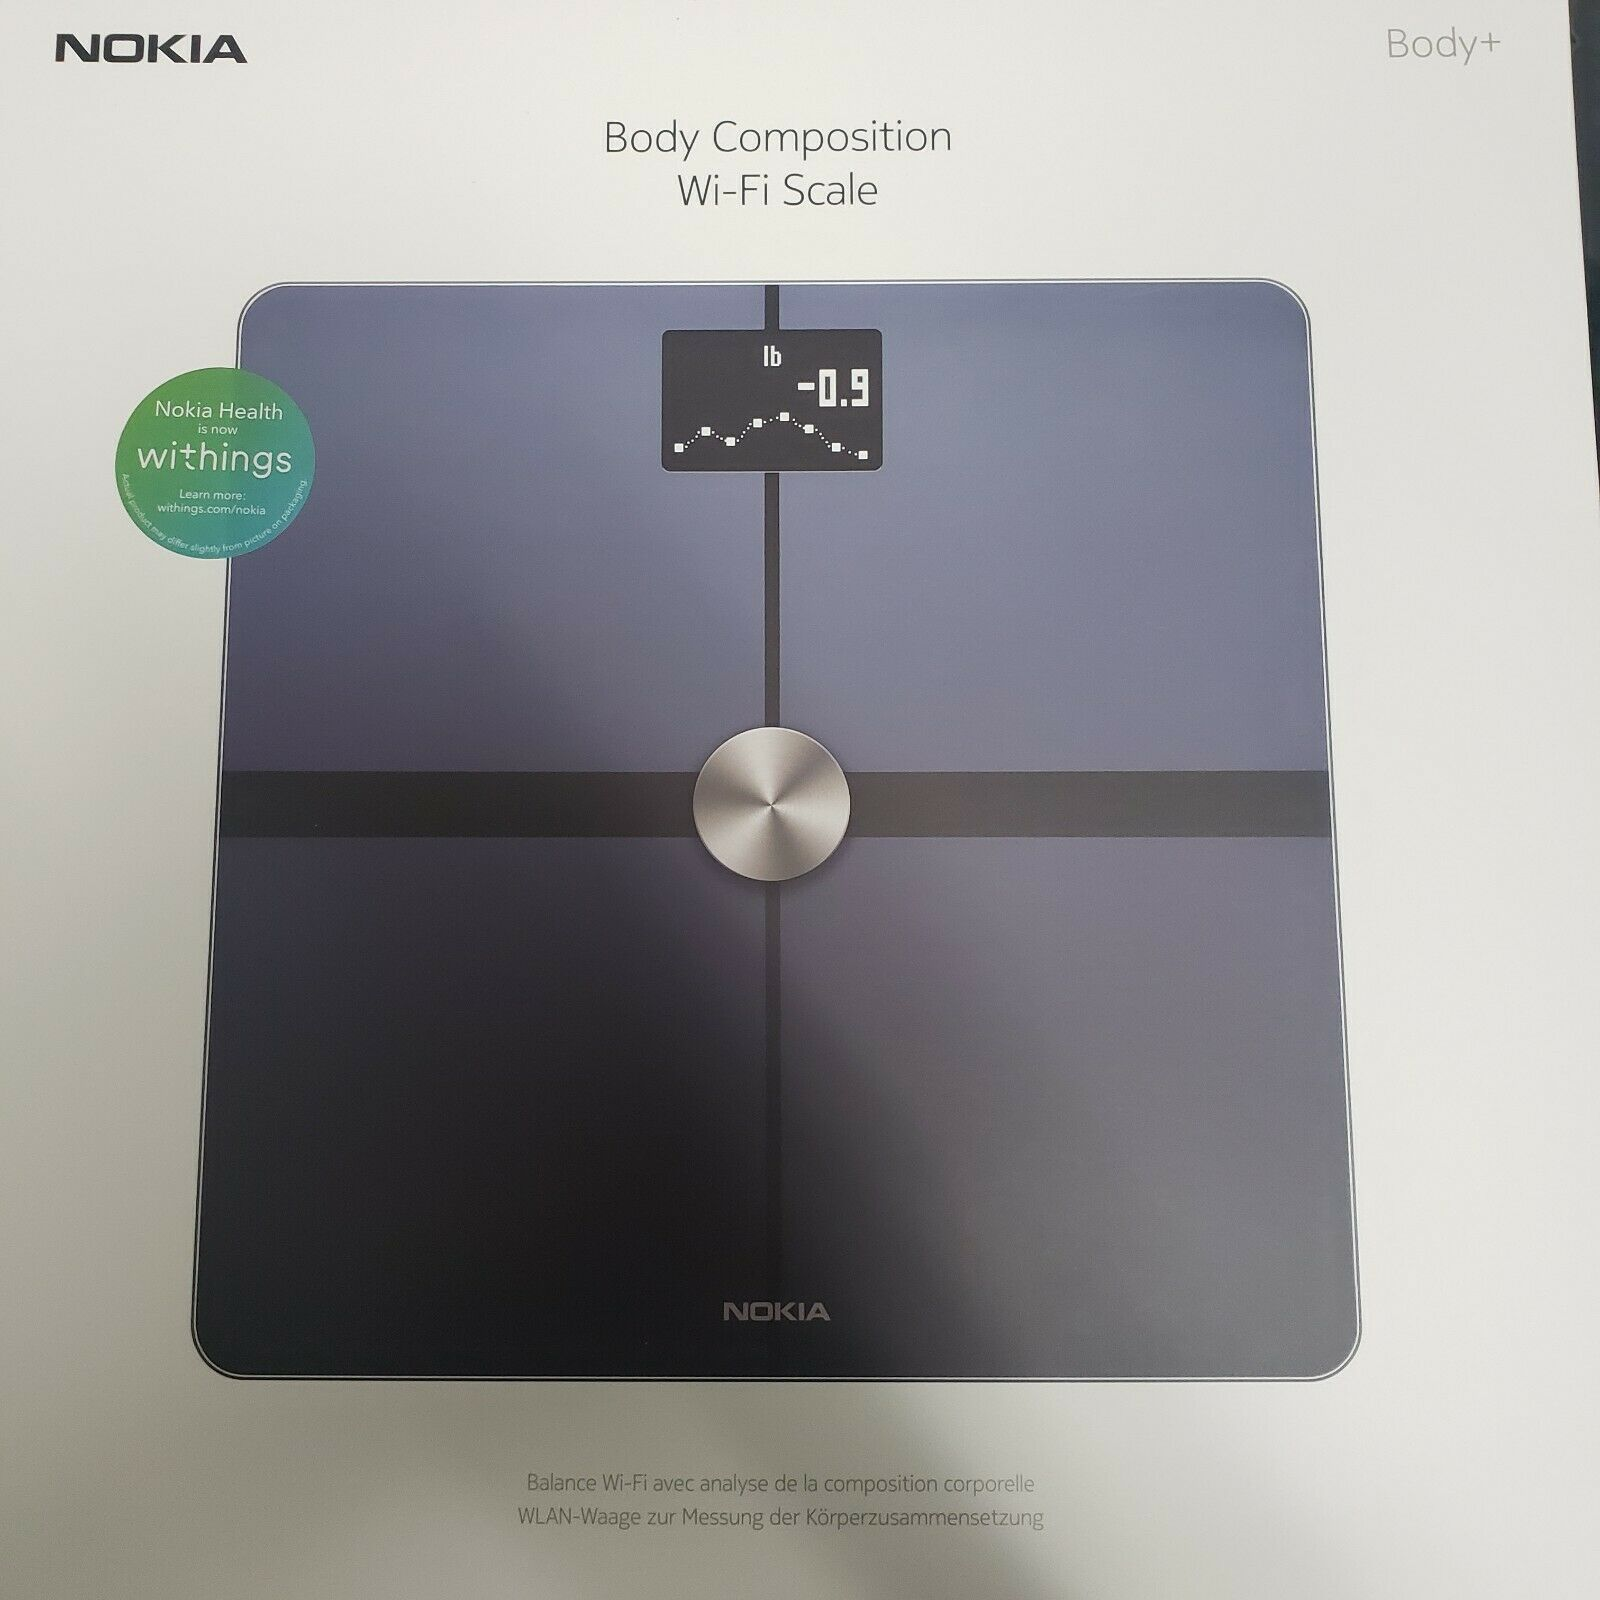 Withings // Nokia White Withings Inc WBS05-White-All-Inter Body+ Smart Body Composition Wi-Fi Digital Scale with smartphone app